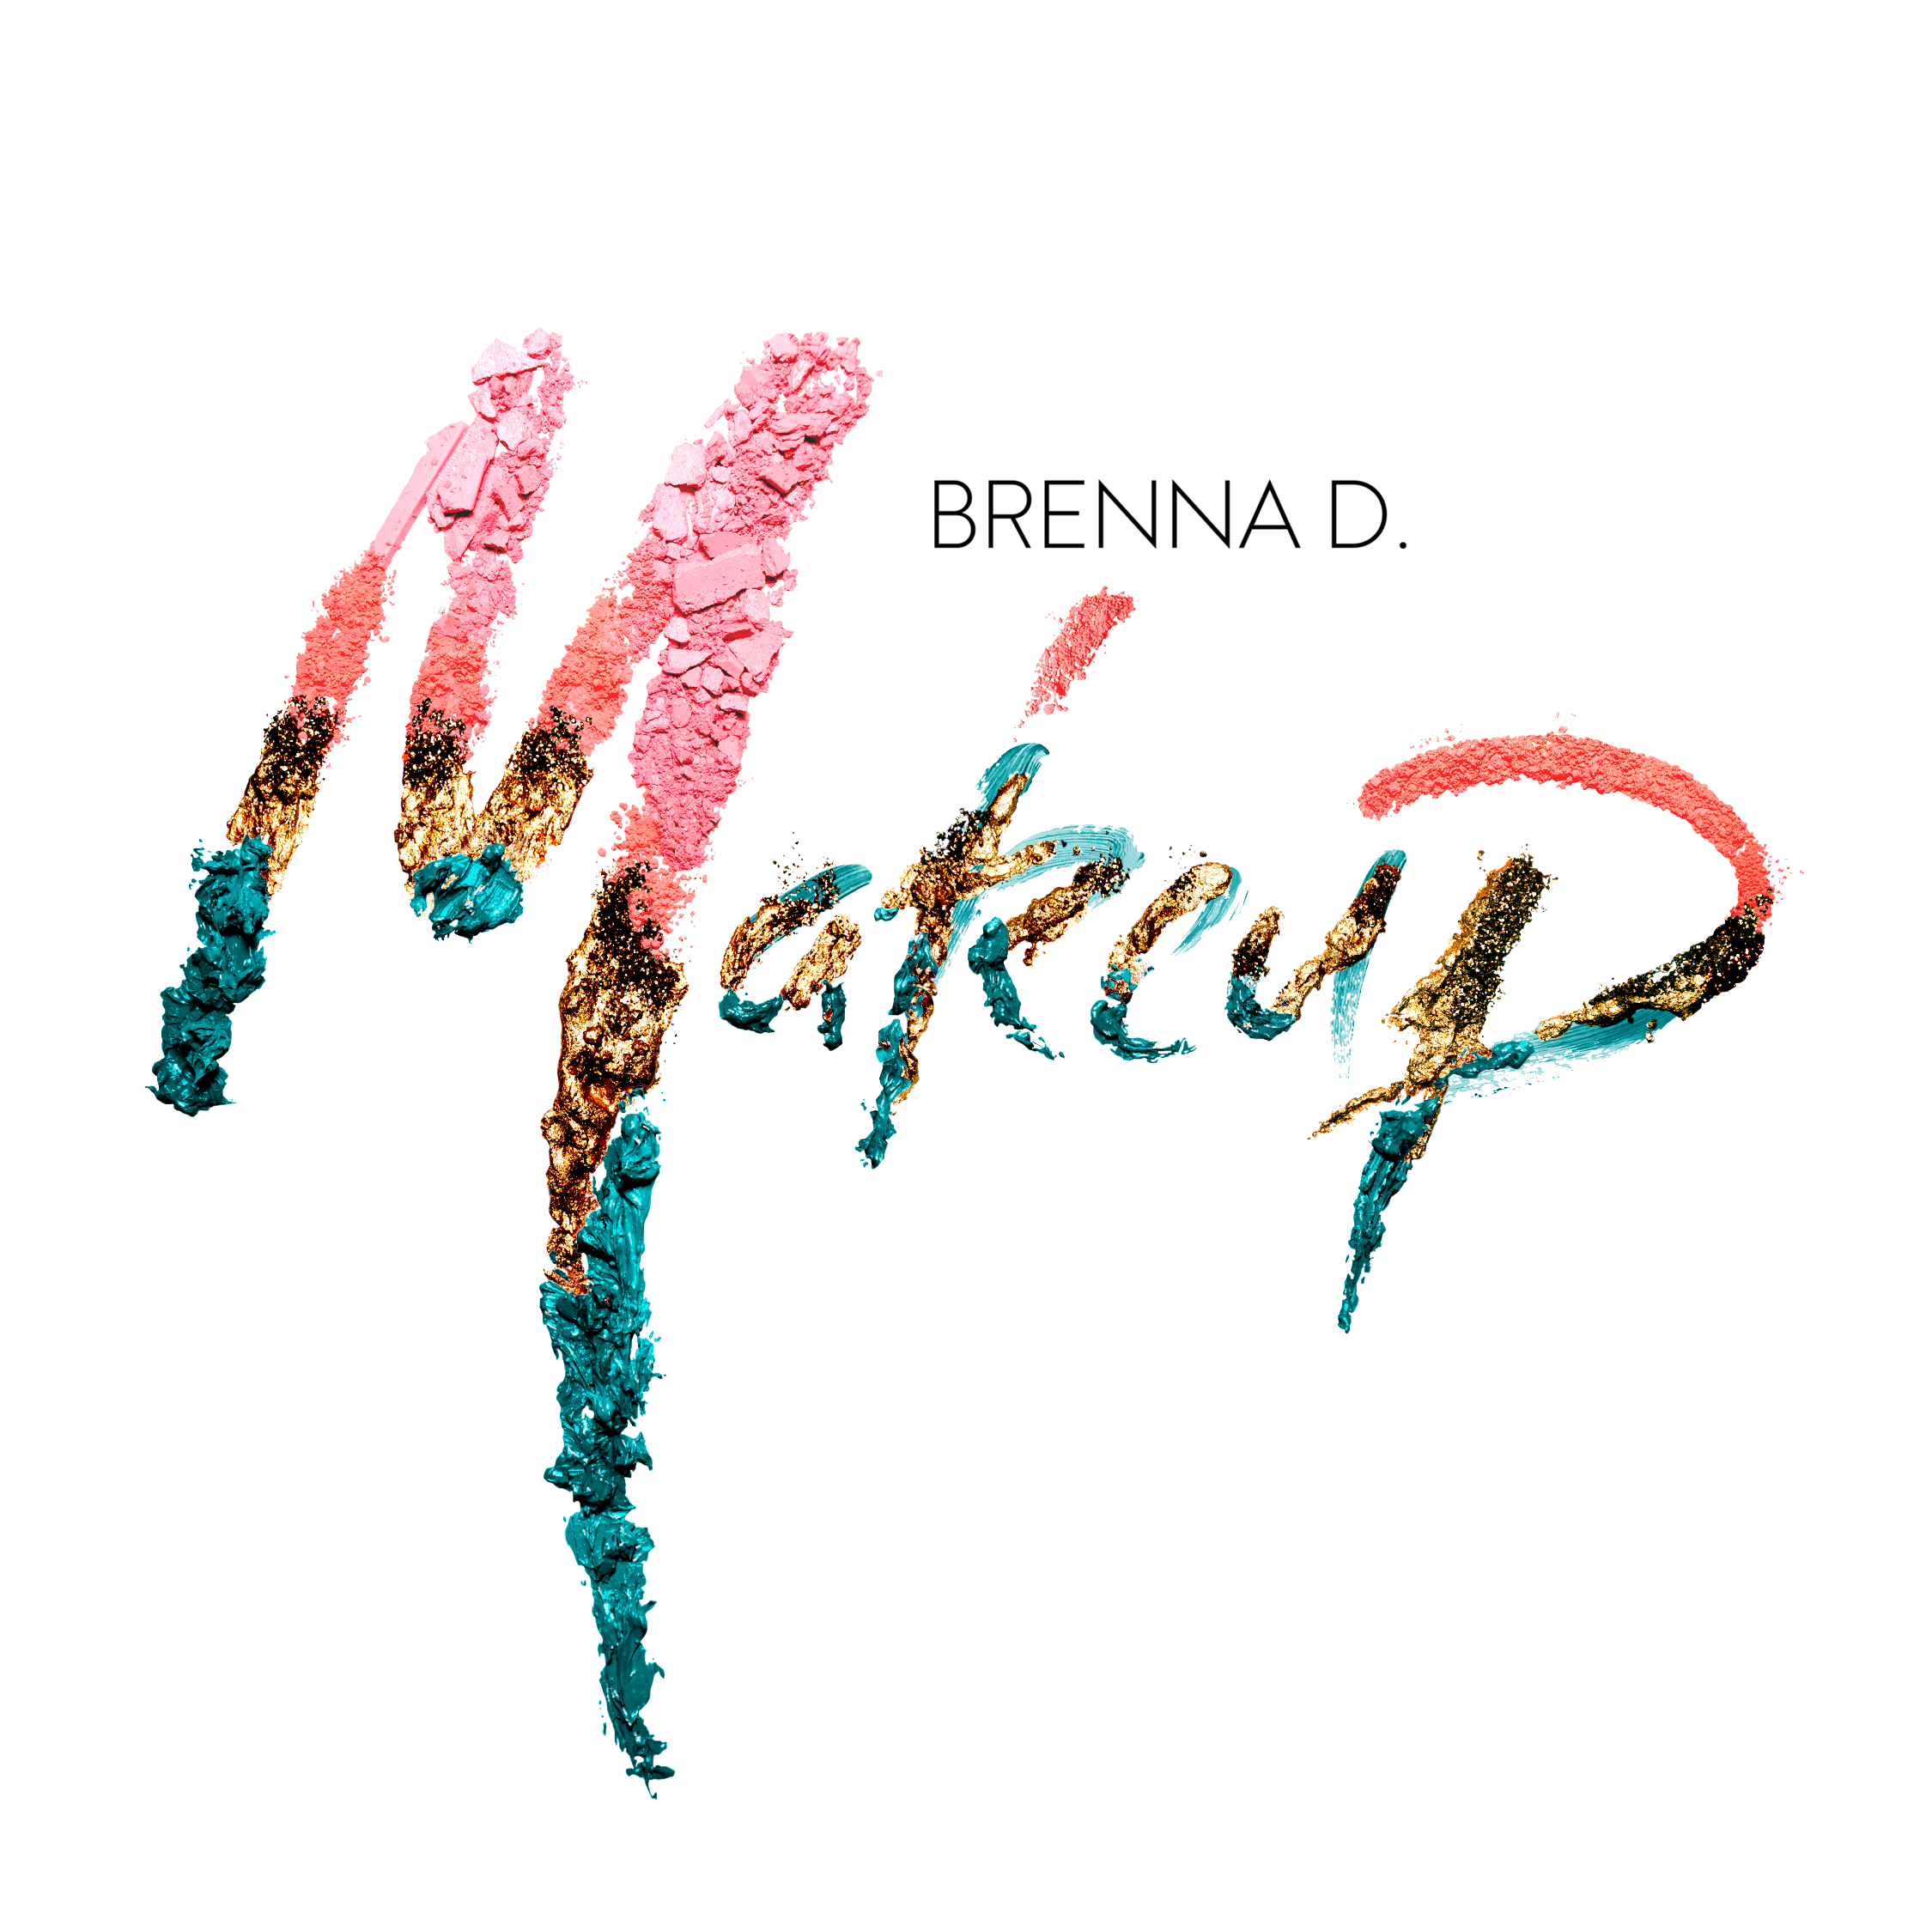 BRENNA D. MAKE UP - Brenna Drury, a makeup artist, needed a touch up on her brand image. Makeup is an art medium in its own right, so the utilization of craft items was essential. This logo was created using physical makeup brushes, powders, lipstick and eye shadow.